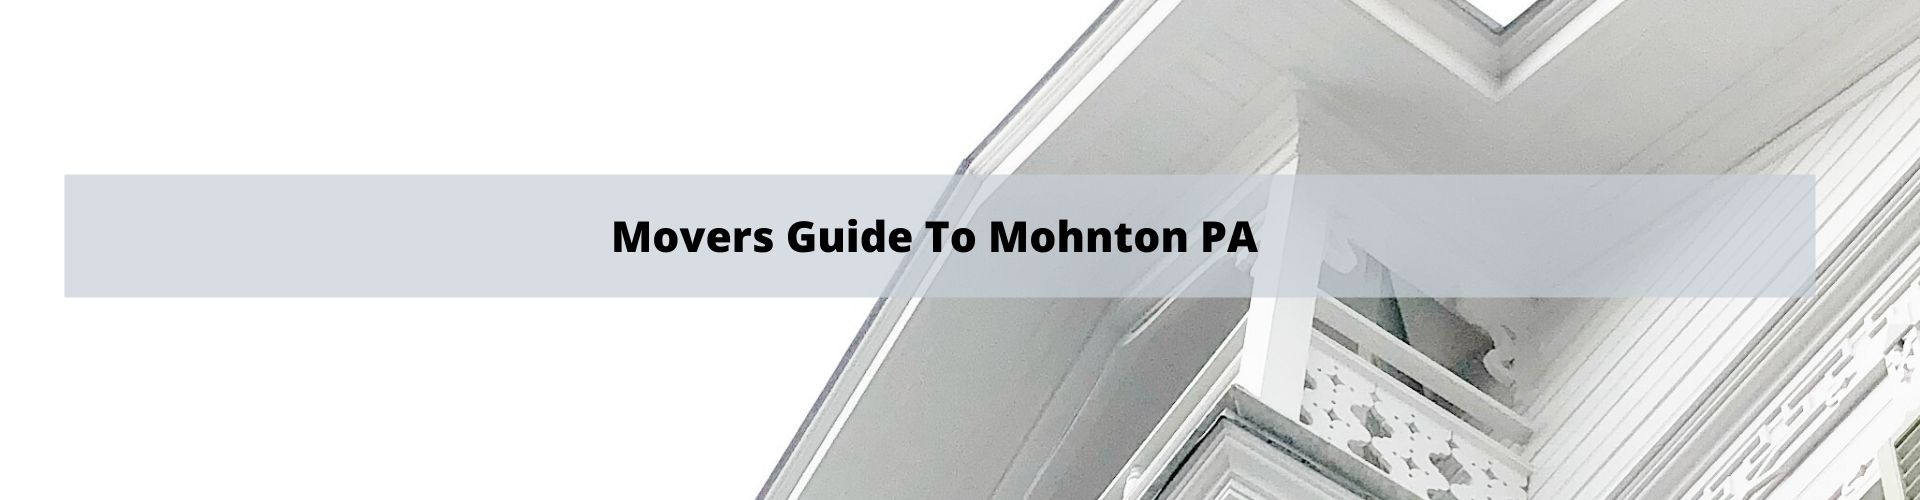 Mohnton PA Movers Guide